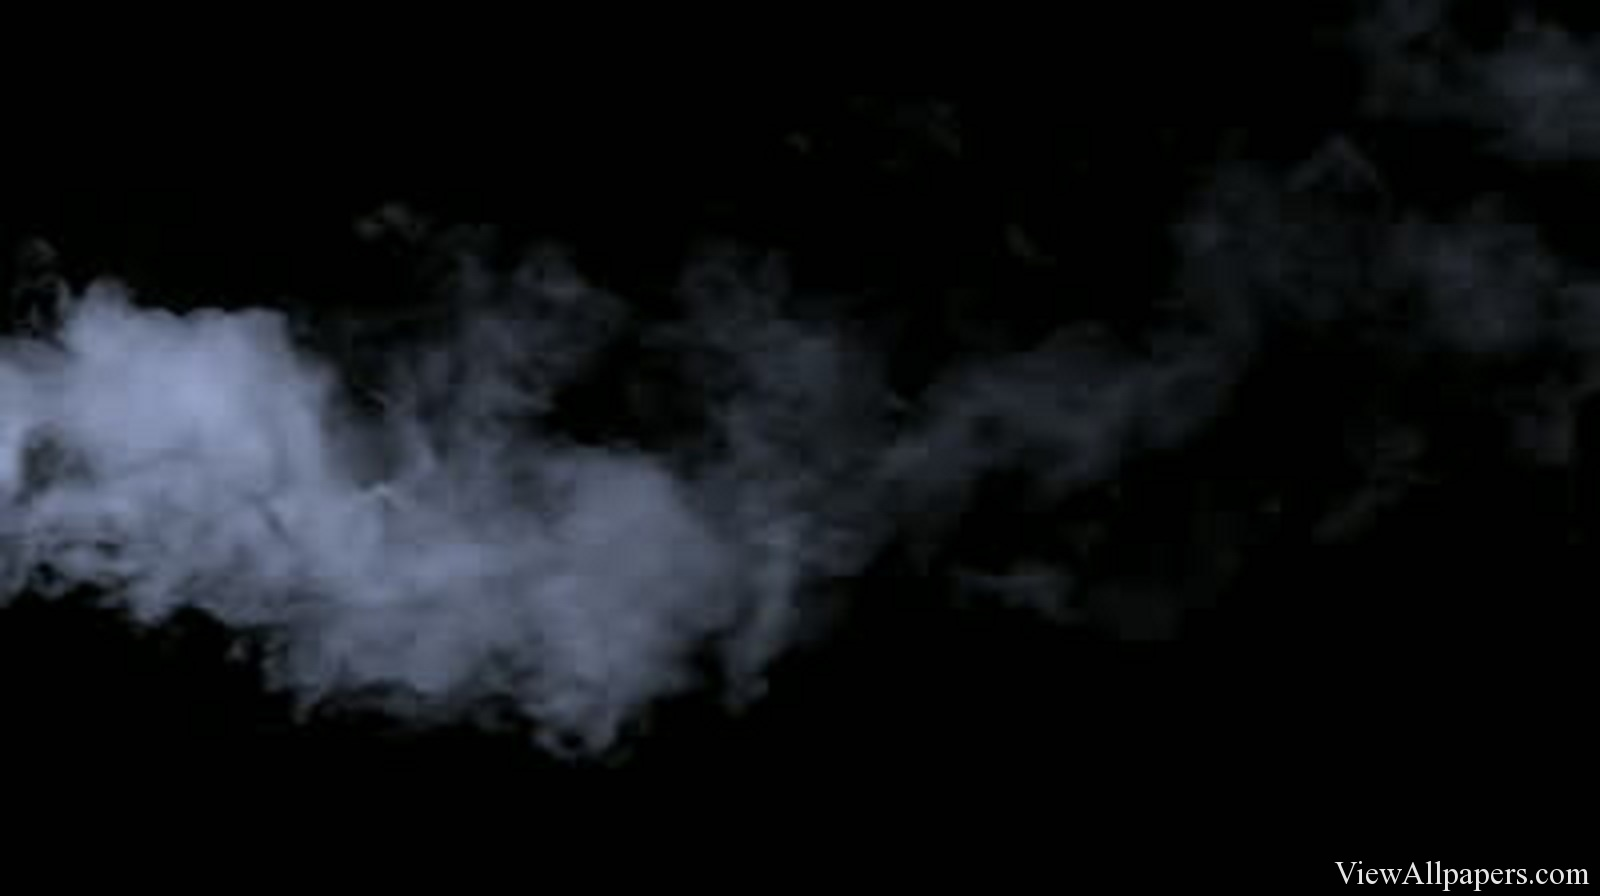 Smoke On Black High Resolution Wallpaper download Smoke On Black 1600x896